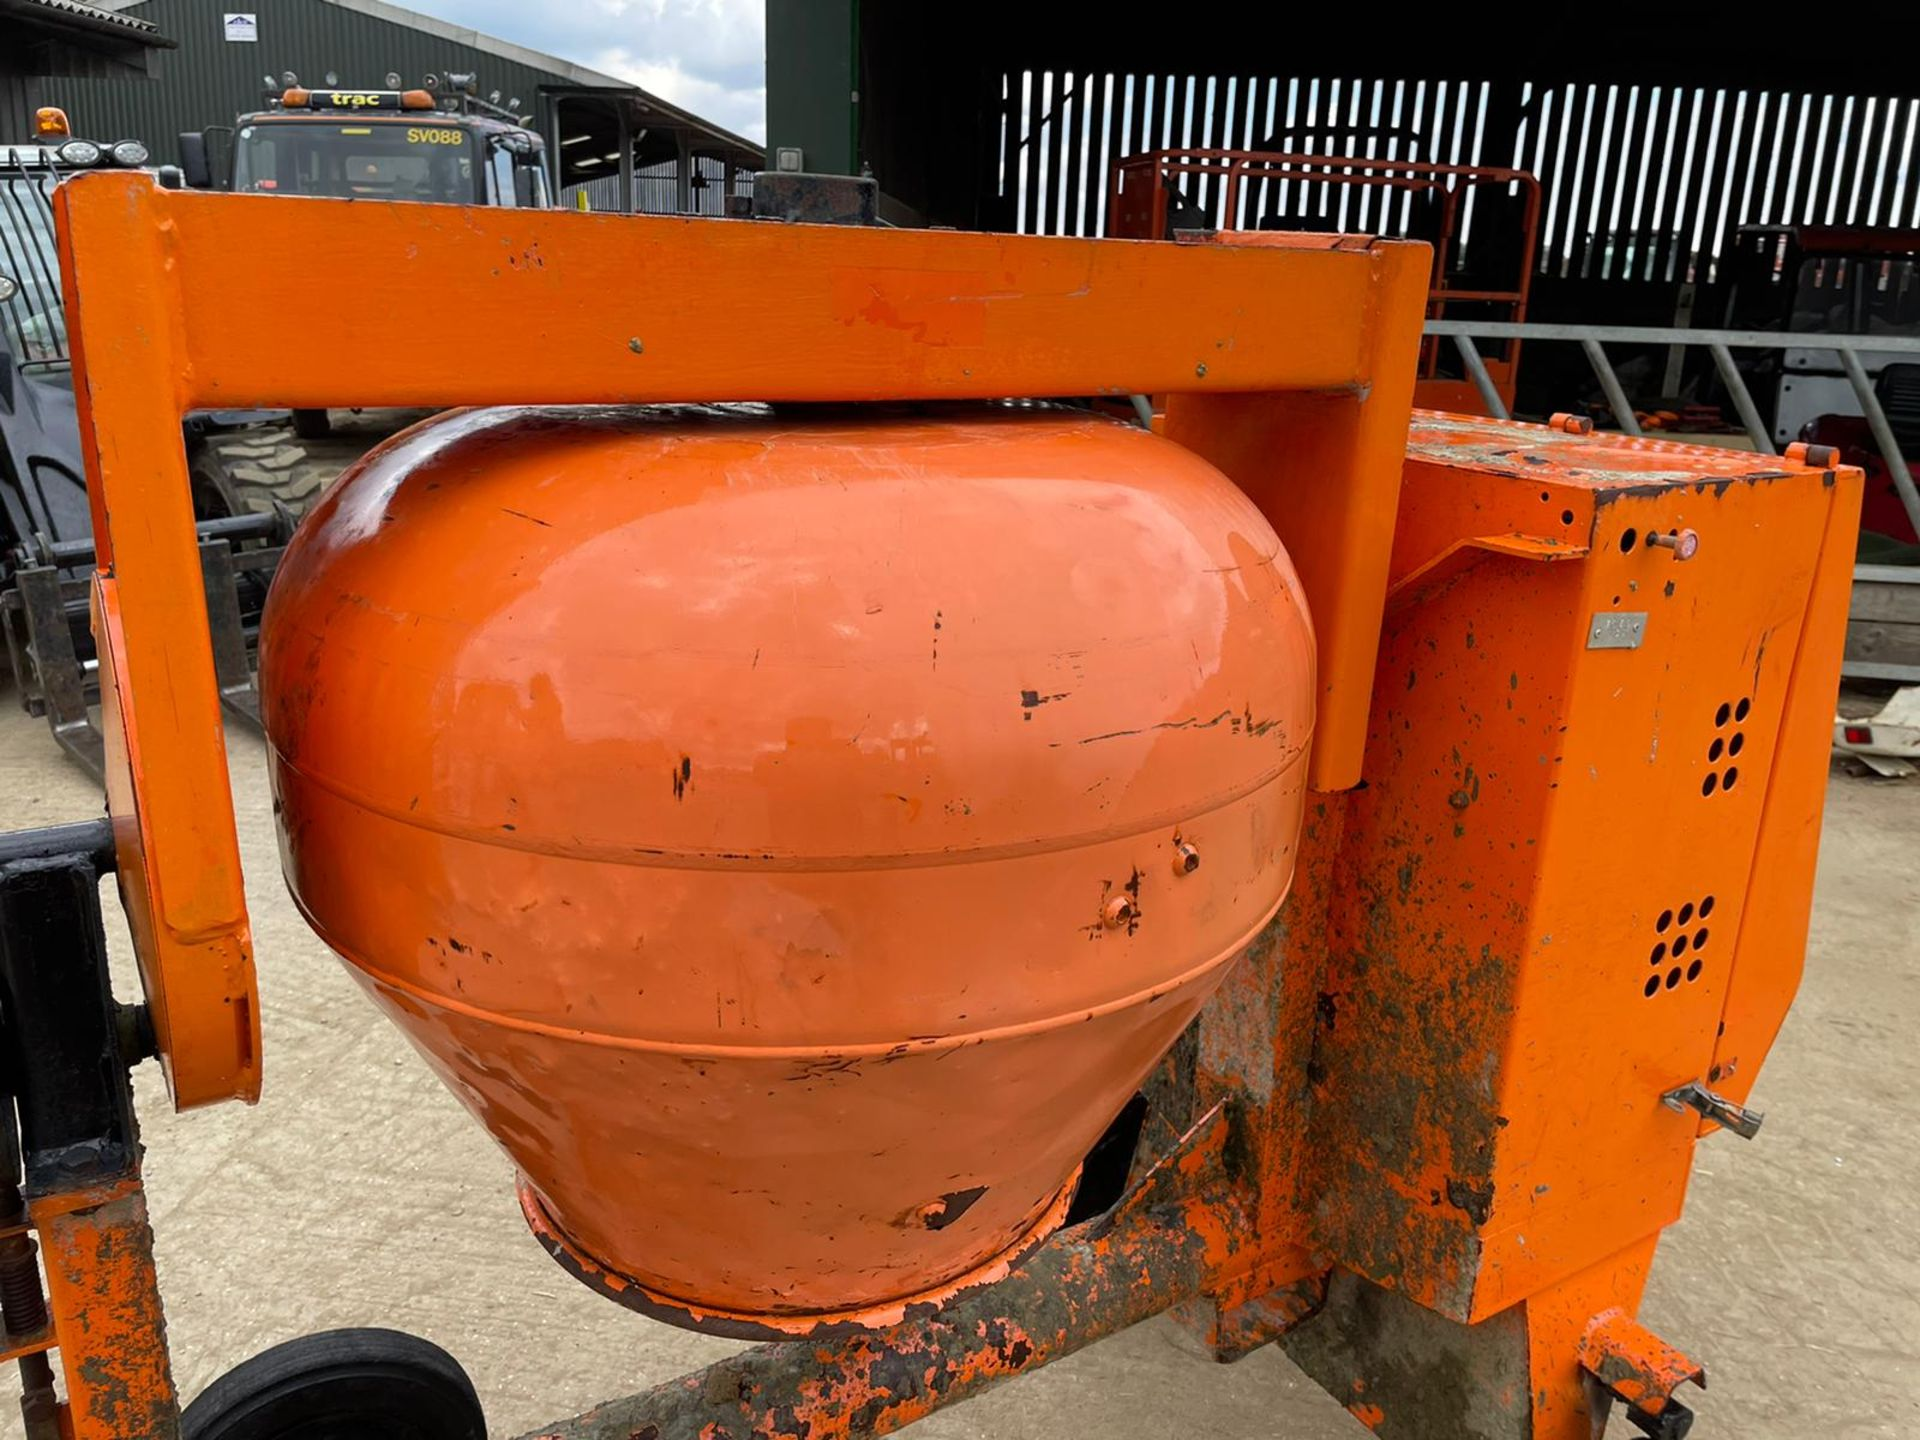 BELLE PREMIER 100XT CONCRETE MIXER, YANMAR DIESEL ENGINE, GOOD COMPRESSION *NO VAT* - Image 4 of 5